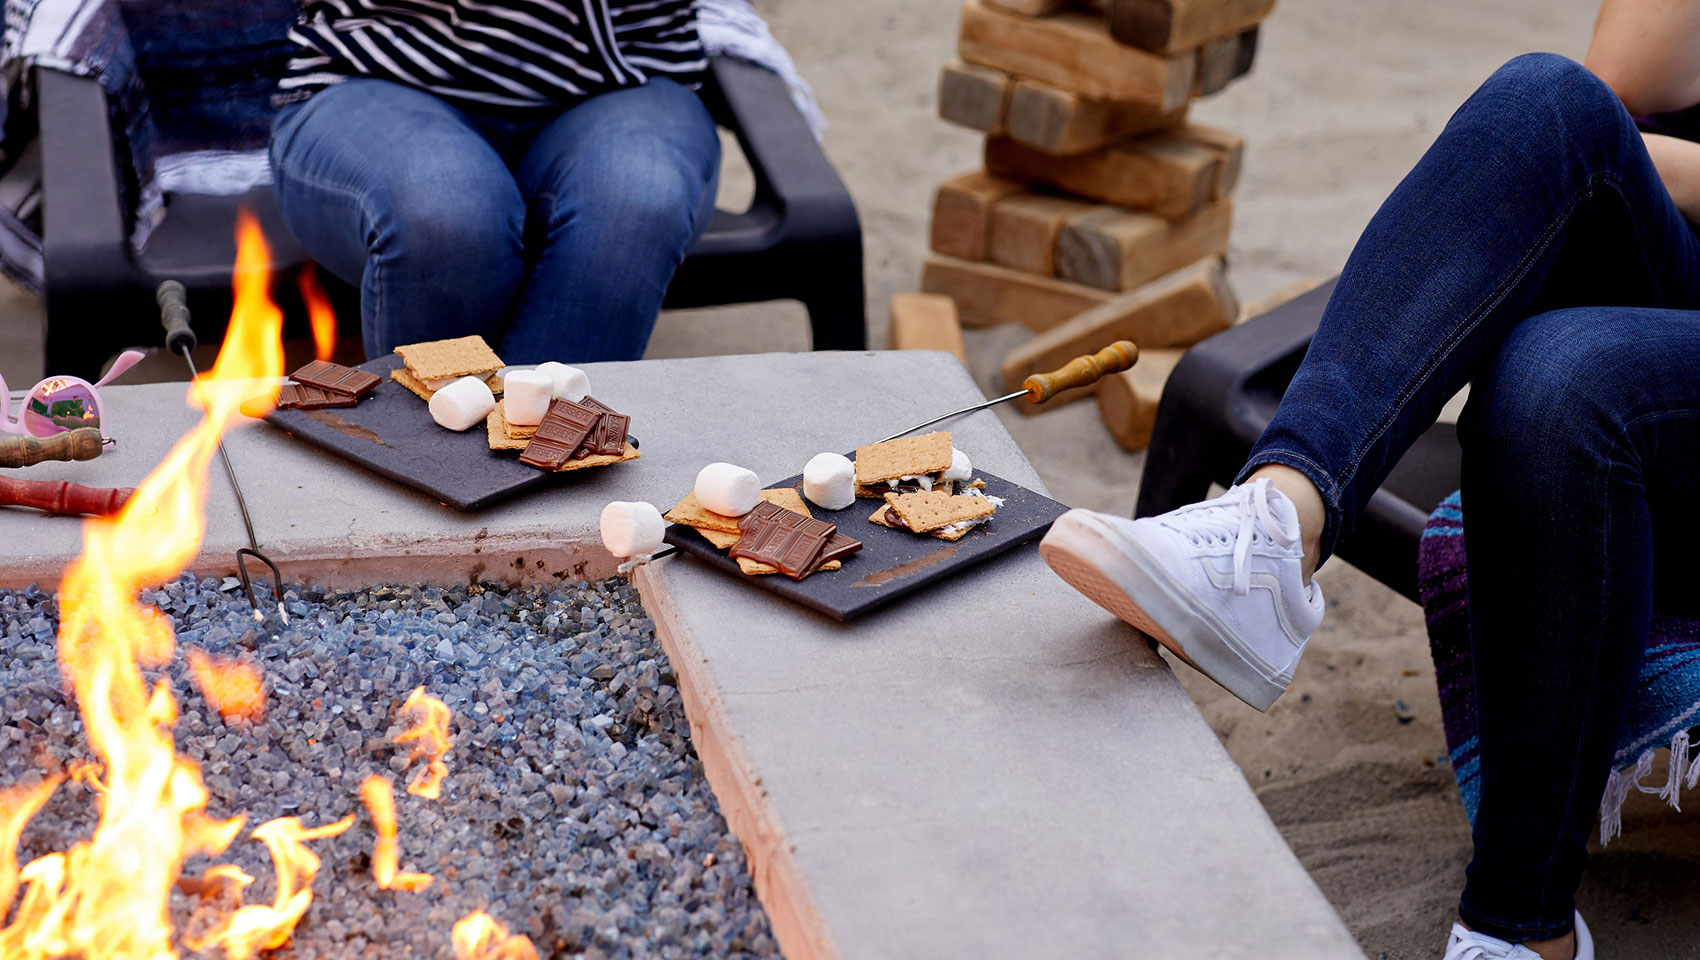 Kimpton Shorebreak guests roasting marshmallow